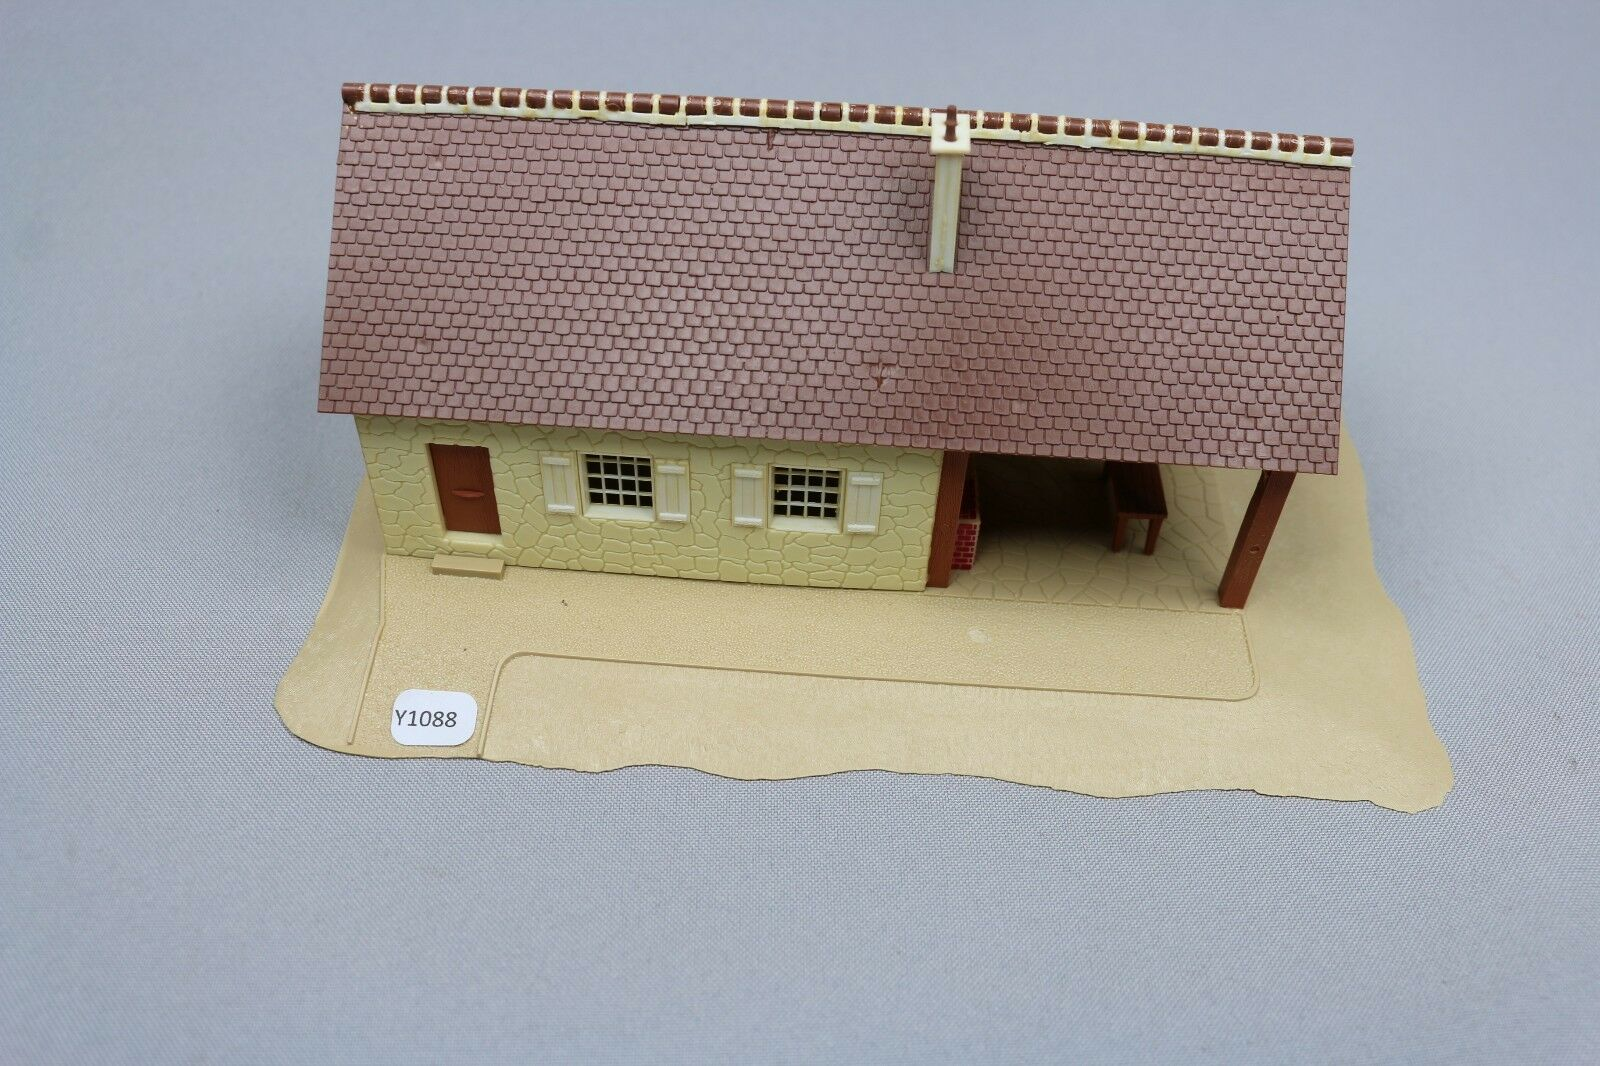 Y1088 jouef 1011 model train oh 1 87 secondary residence house assembled